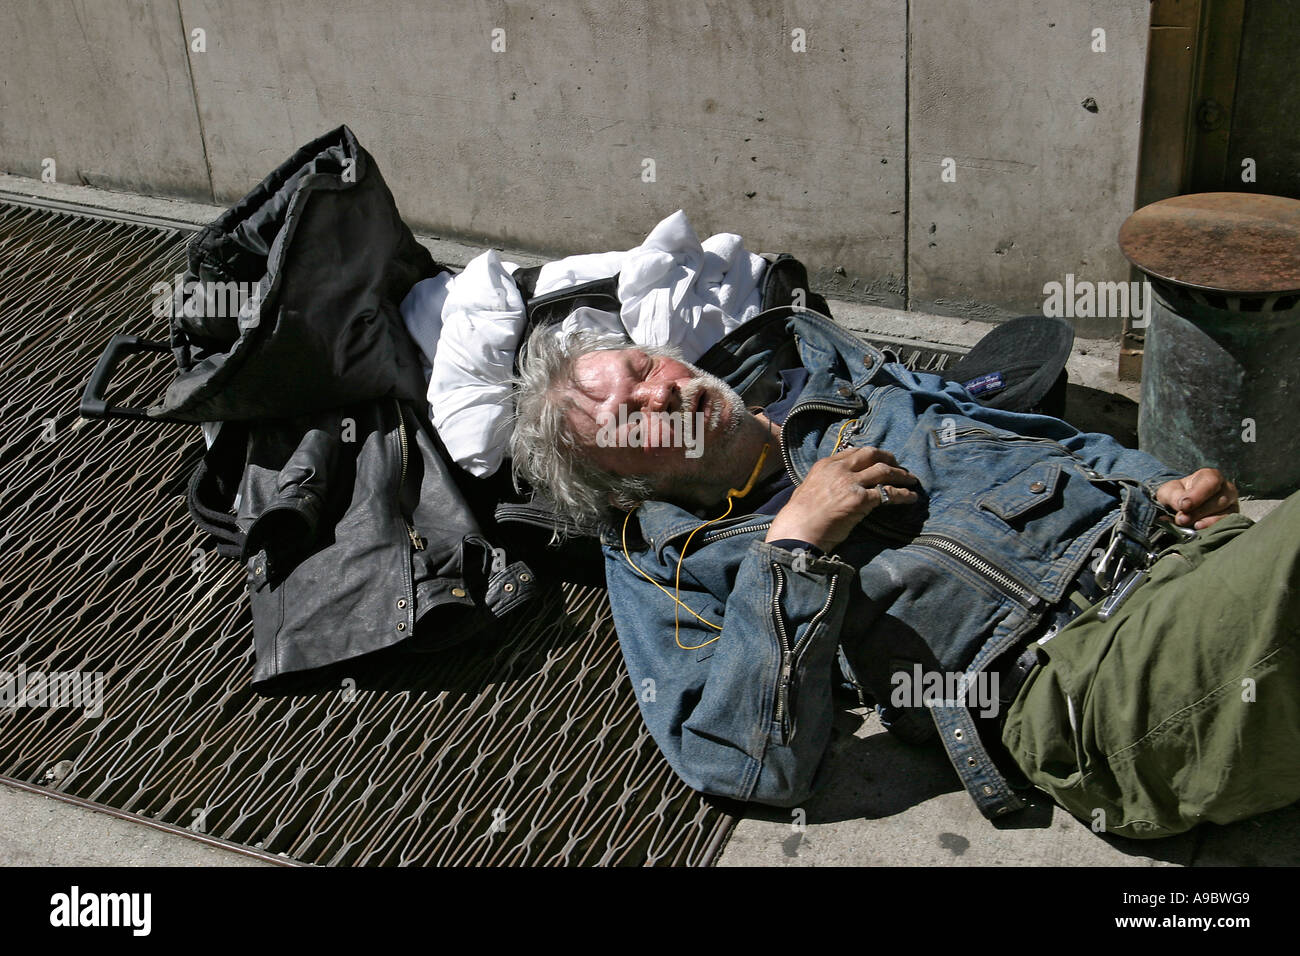 Homeless Alcoholic Sleeping Outdoors Stock Photo, Picture And ...